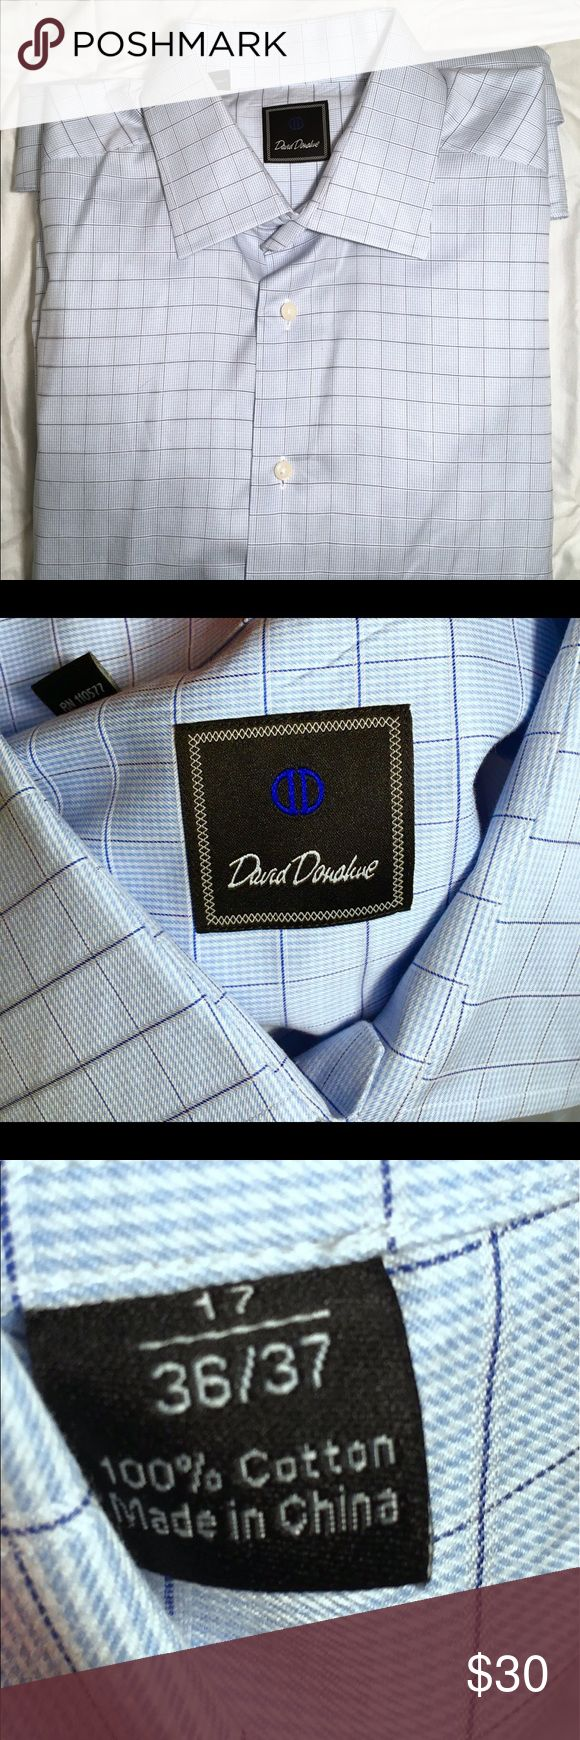 17 best ideas about french cuff on pinterest next mens for David donahue french cuff shirts